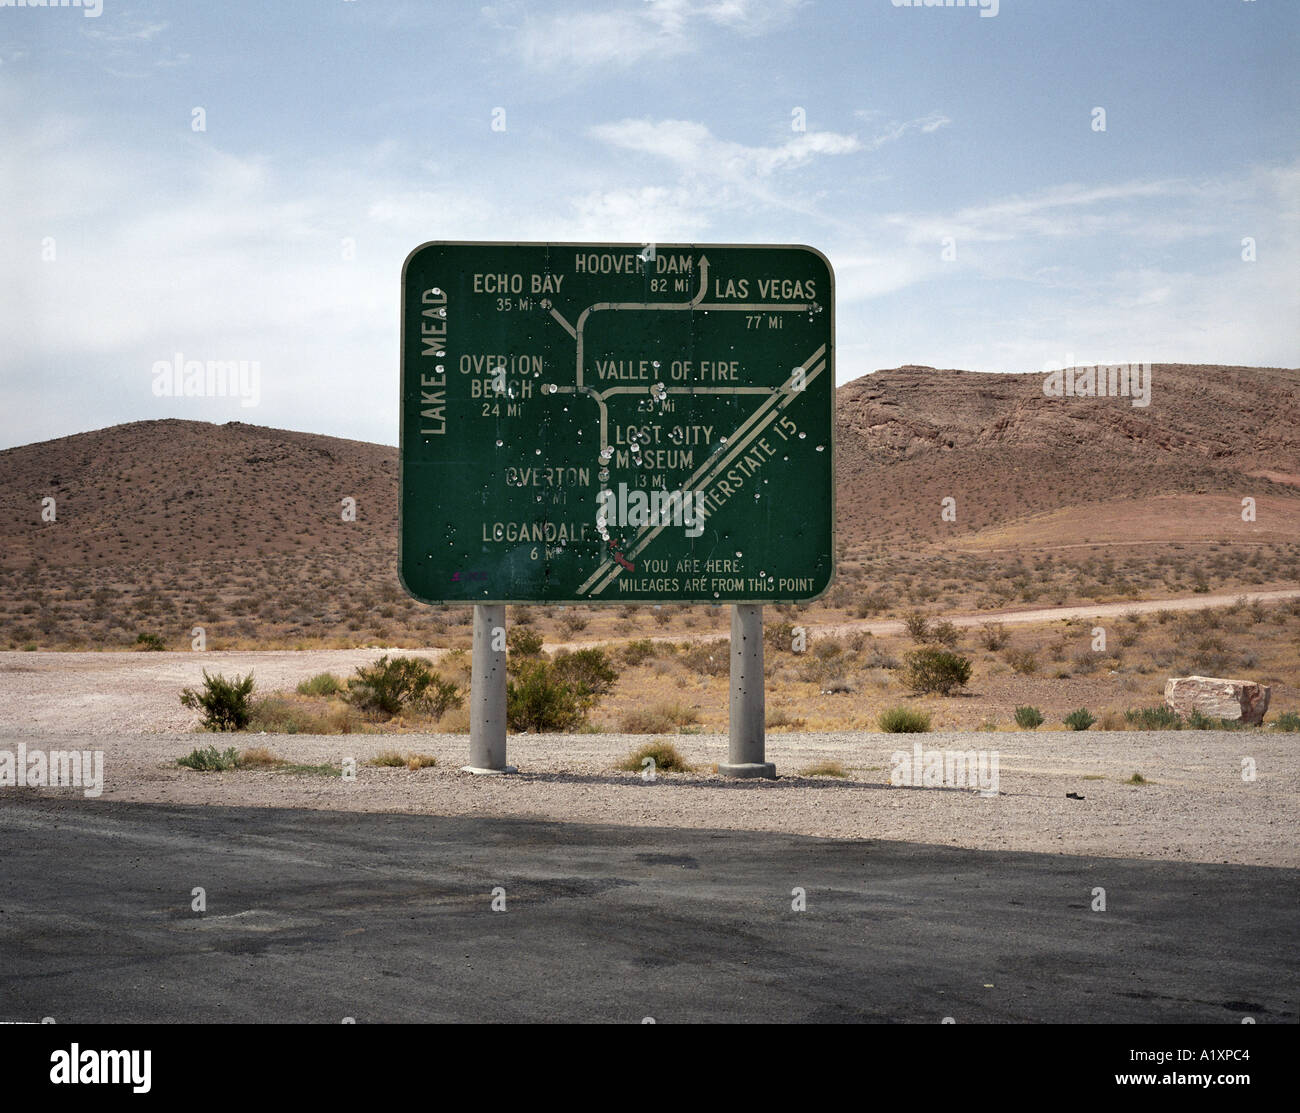 A Signpost Showing The Way To Areas Around Lake Mead And Interstate 15 Is Heavily Marked